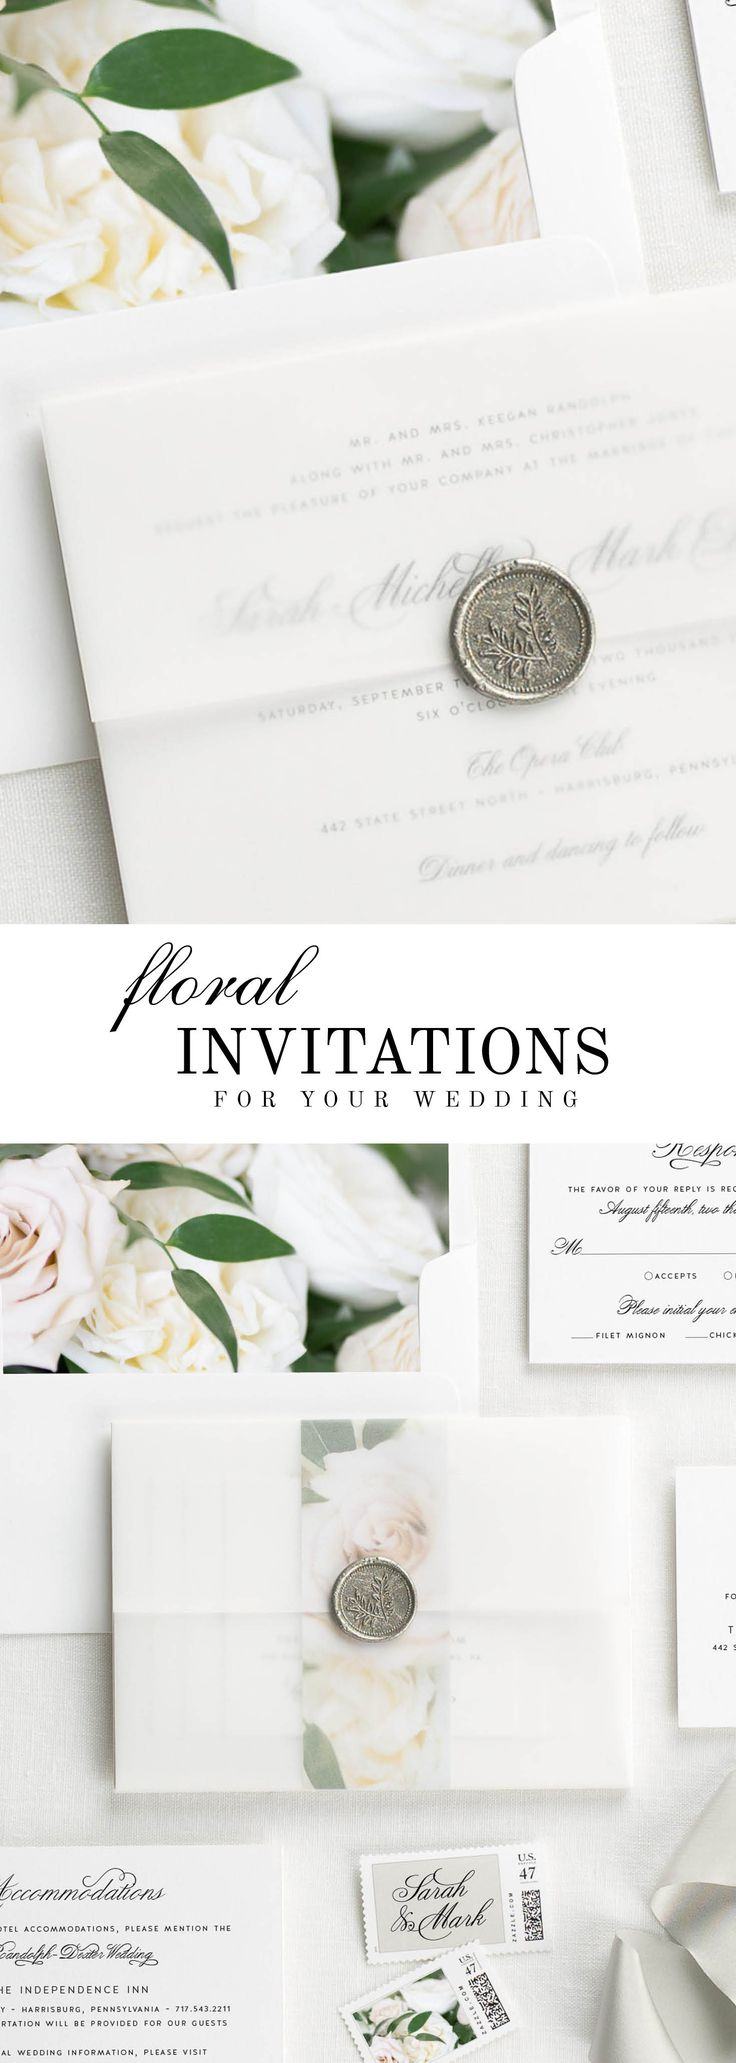 328 Best Wedding Invitations Images On Pinterest Bridal